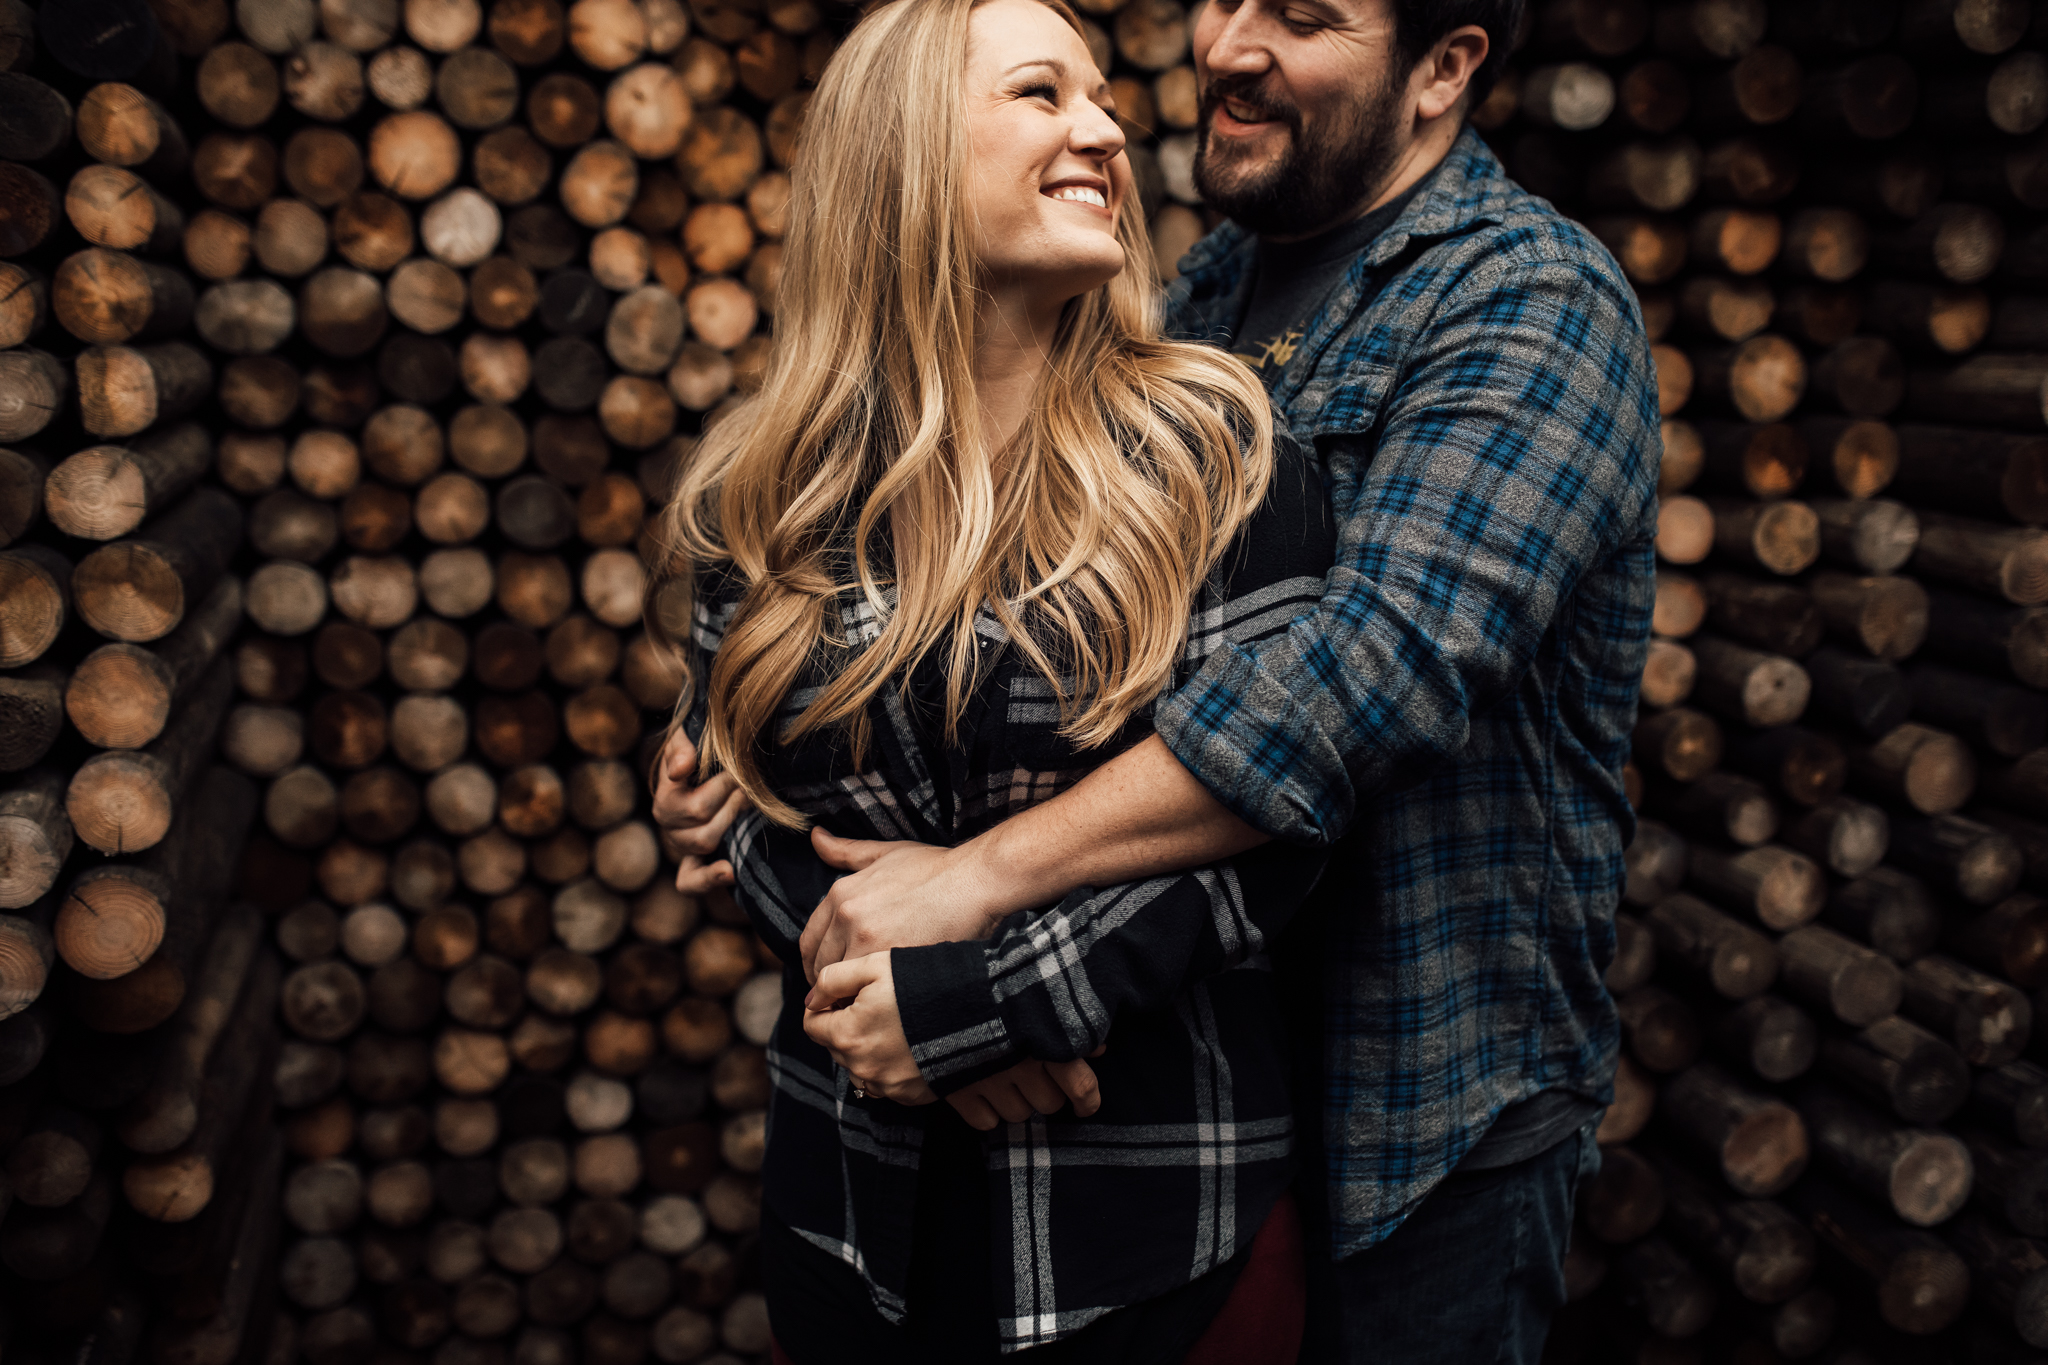 wiseacre-brewing-wedding-photographer-the-warmth-around-you-cassie-cook-photography (28 of 64).jpg